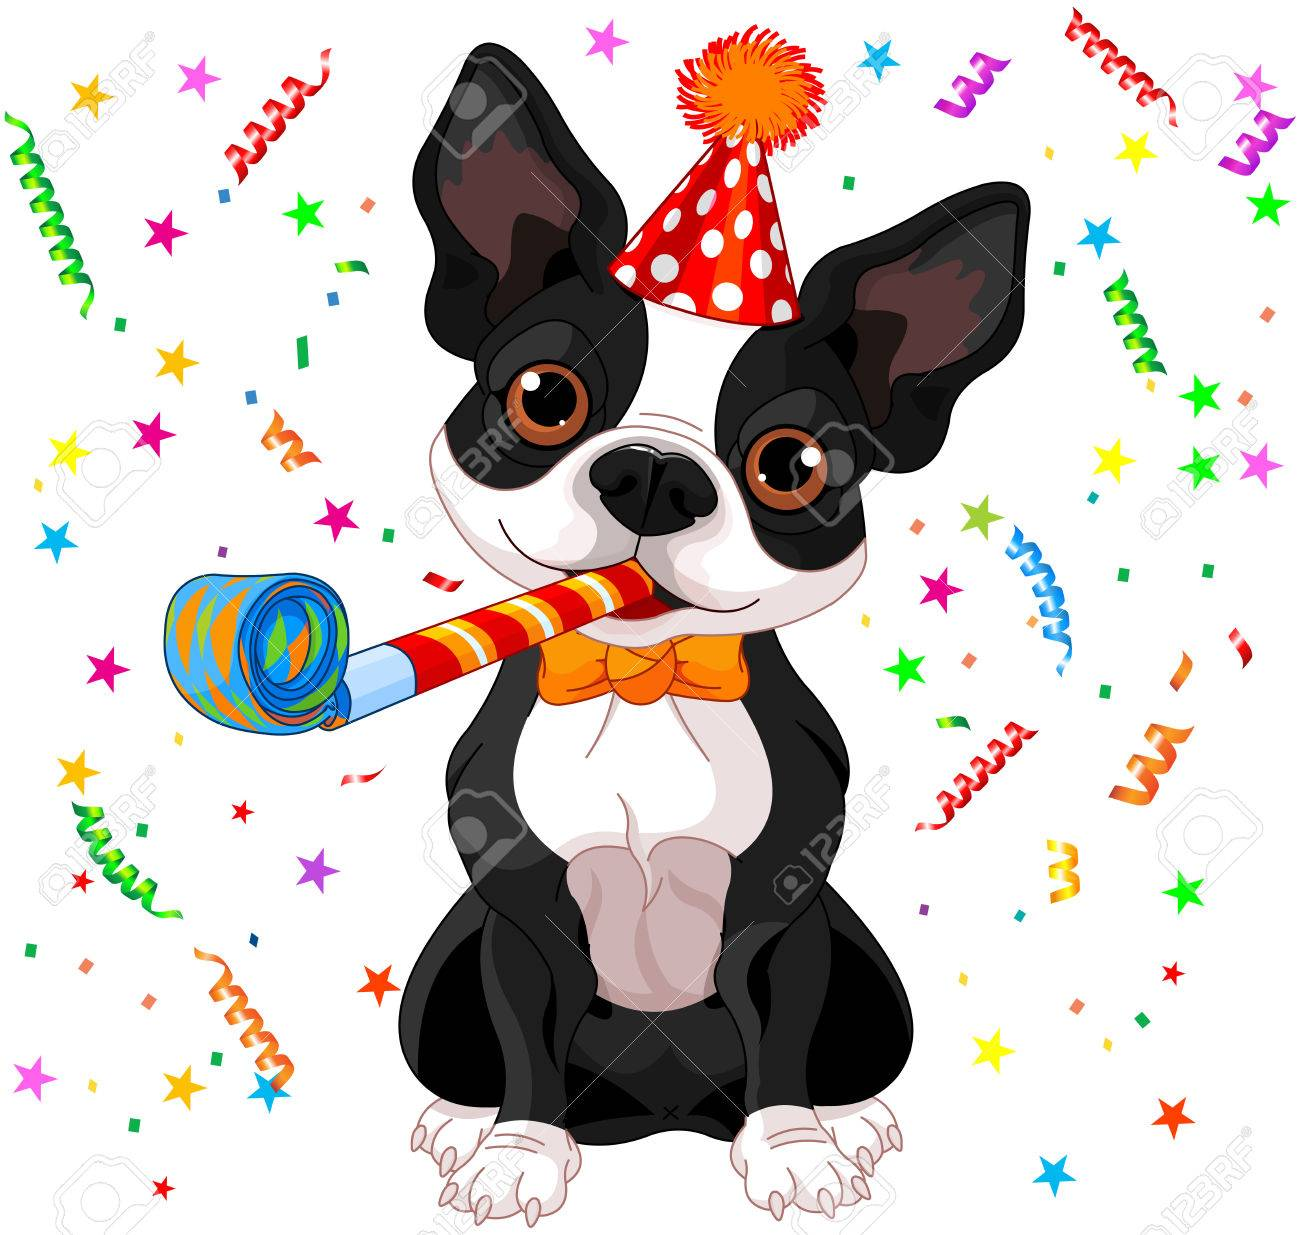 Travail en cercle 35588778-illustration-of-cute-boston-terrier-celebrating